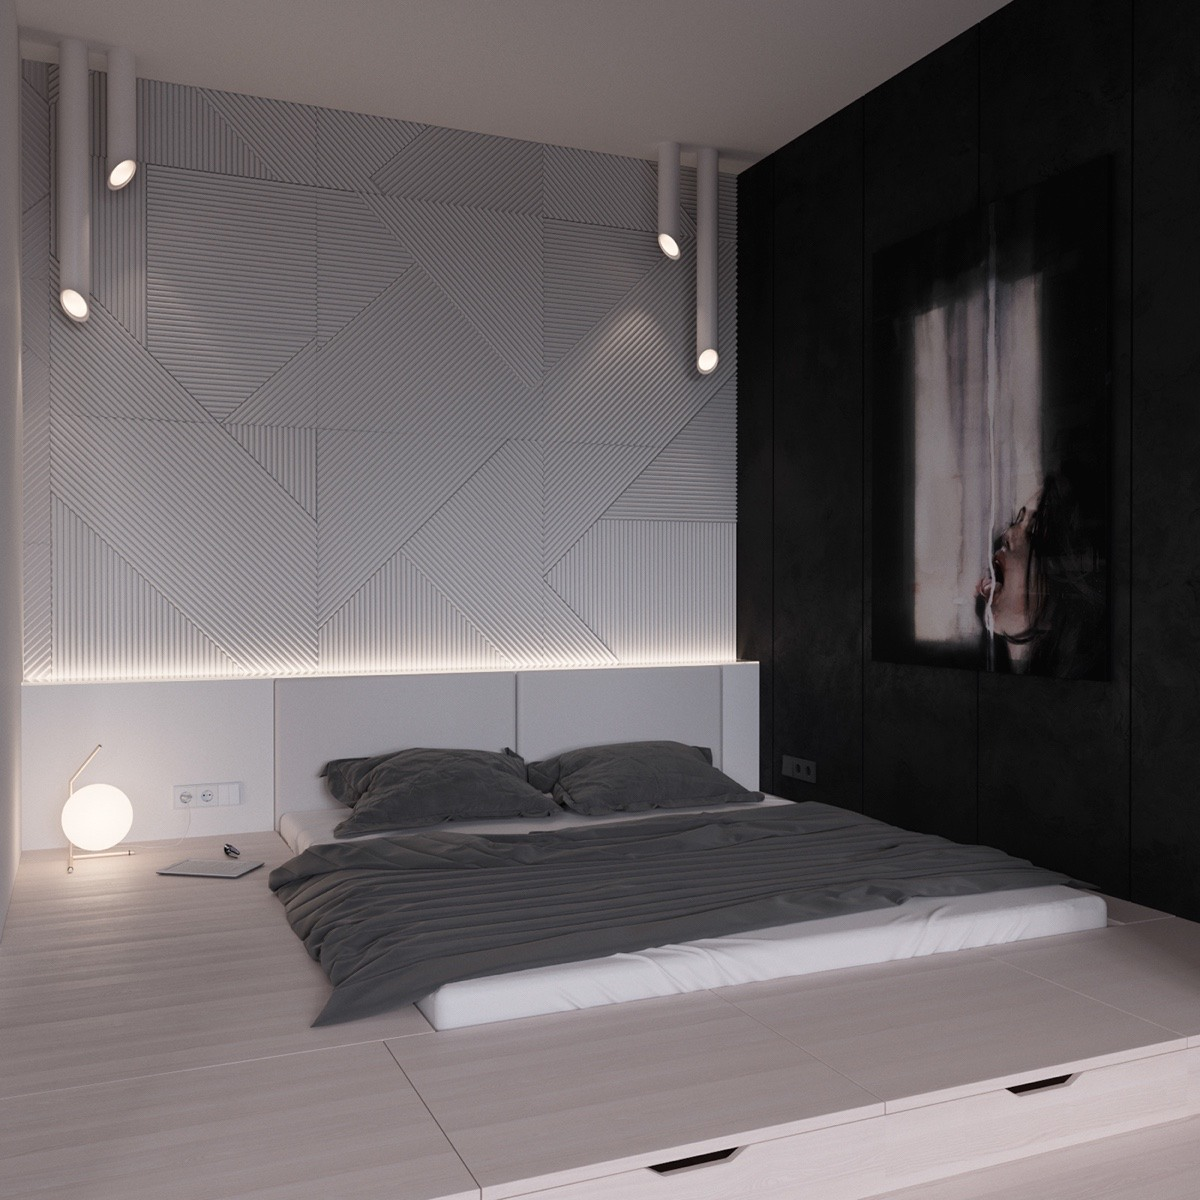 Black And White Room 40 beautiful black & white bedroom designs